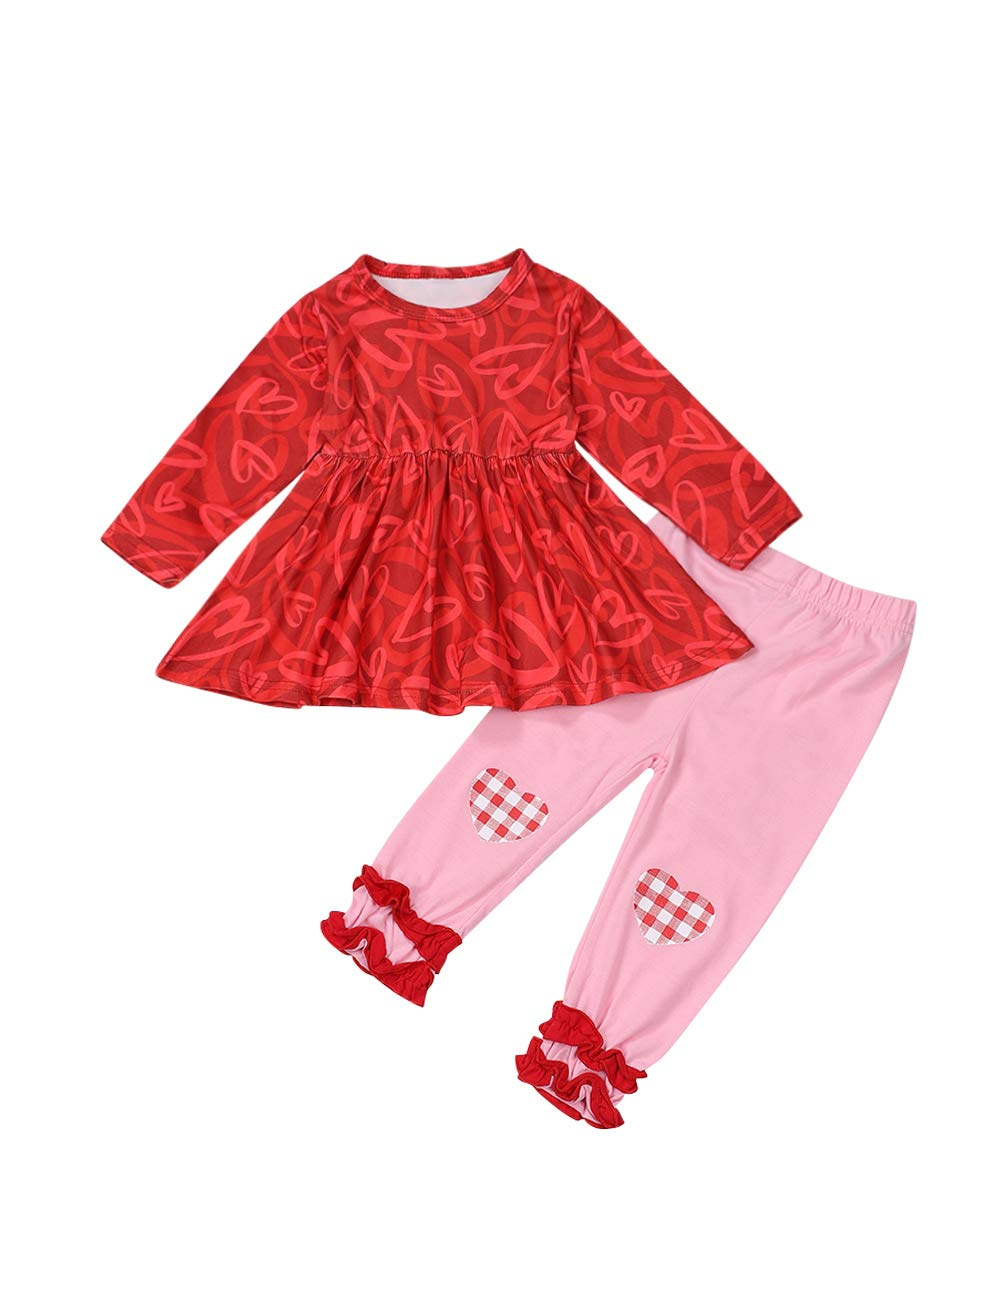 Valentine's Day Toddler Baby Girl Outfit LovingHeart Long Sleeve Dress Top + Ruffle Pants 2Pcs Fall Winter Clothes Set